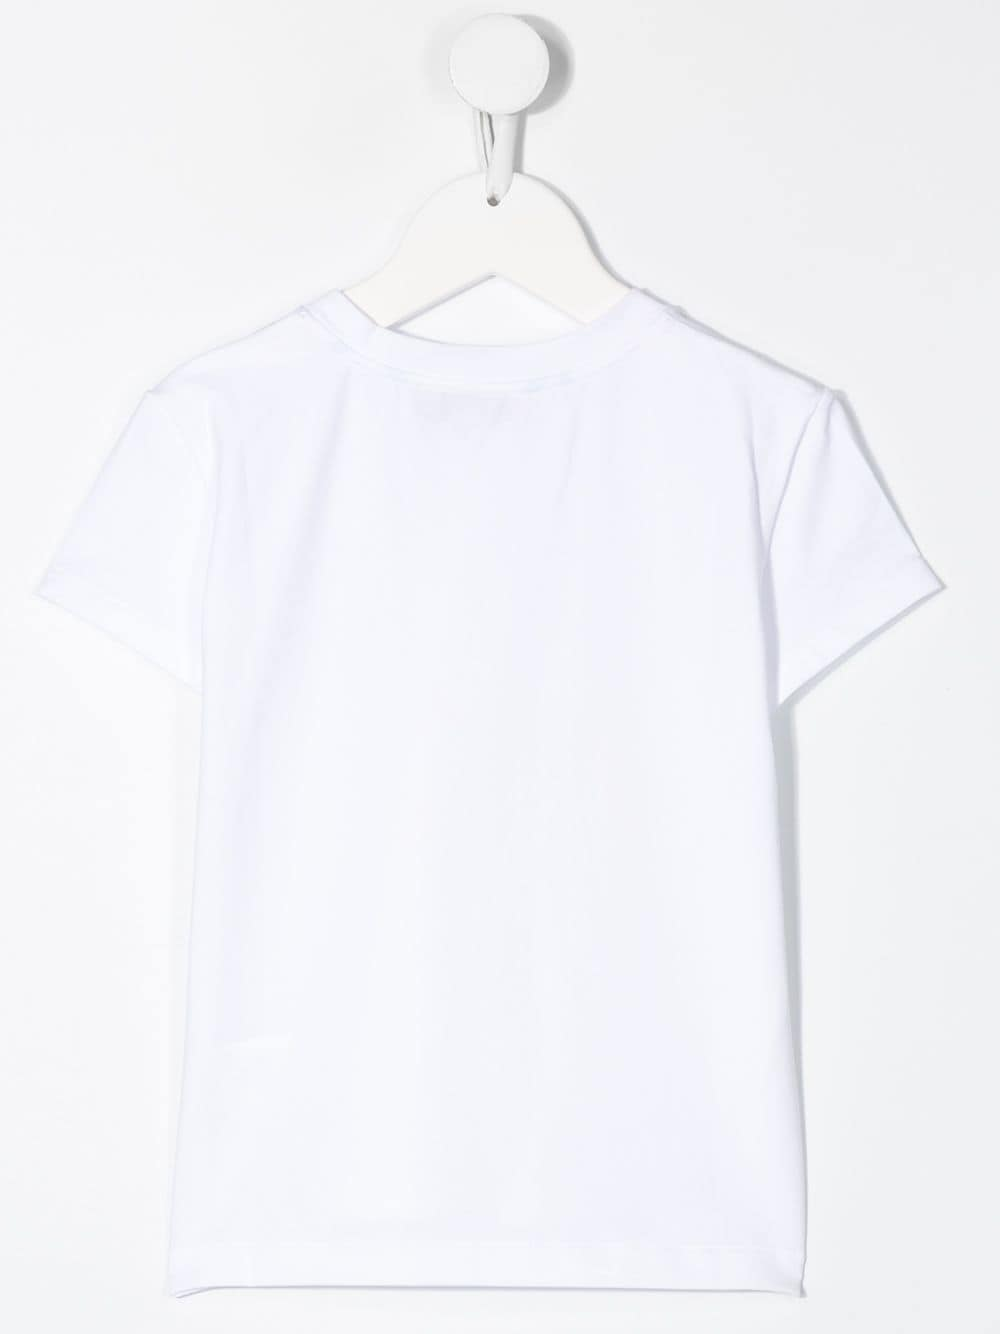 EMILIO PUCCI all over logo print t-shirt white